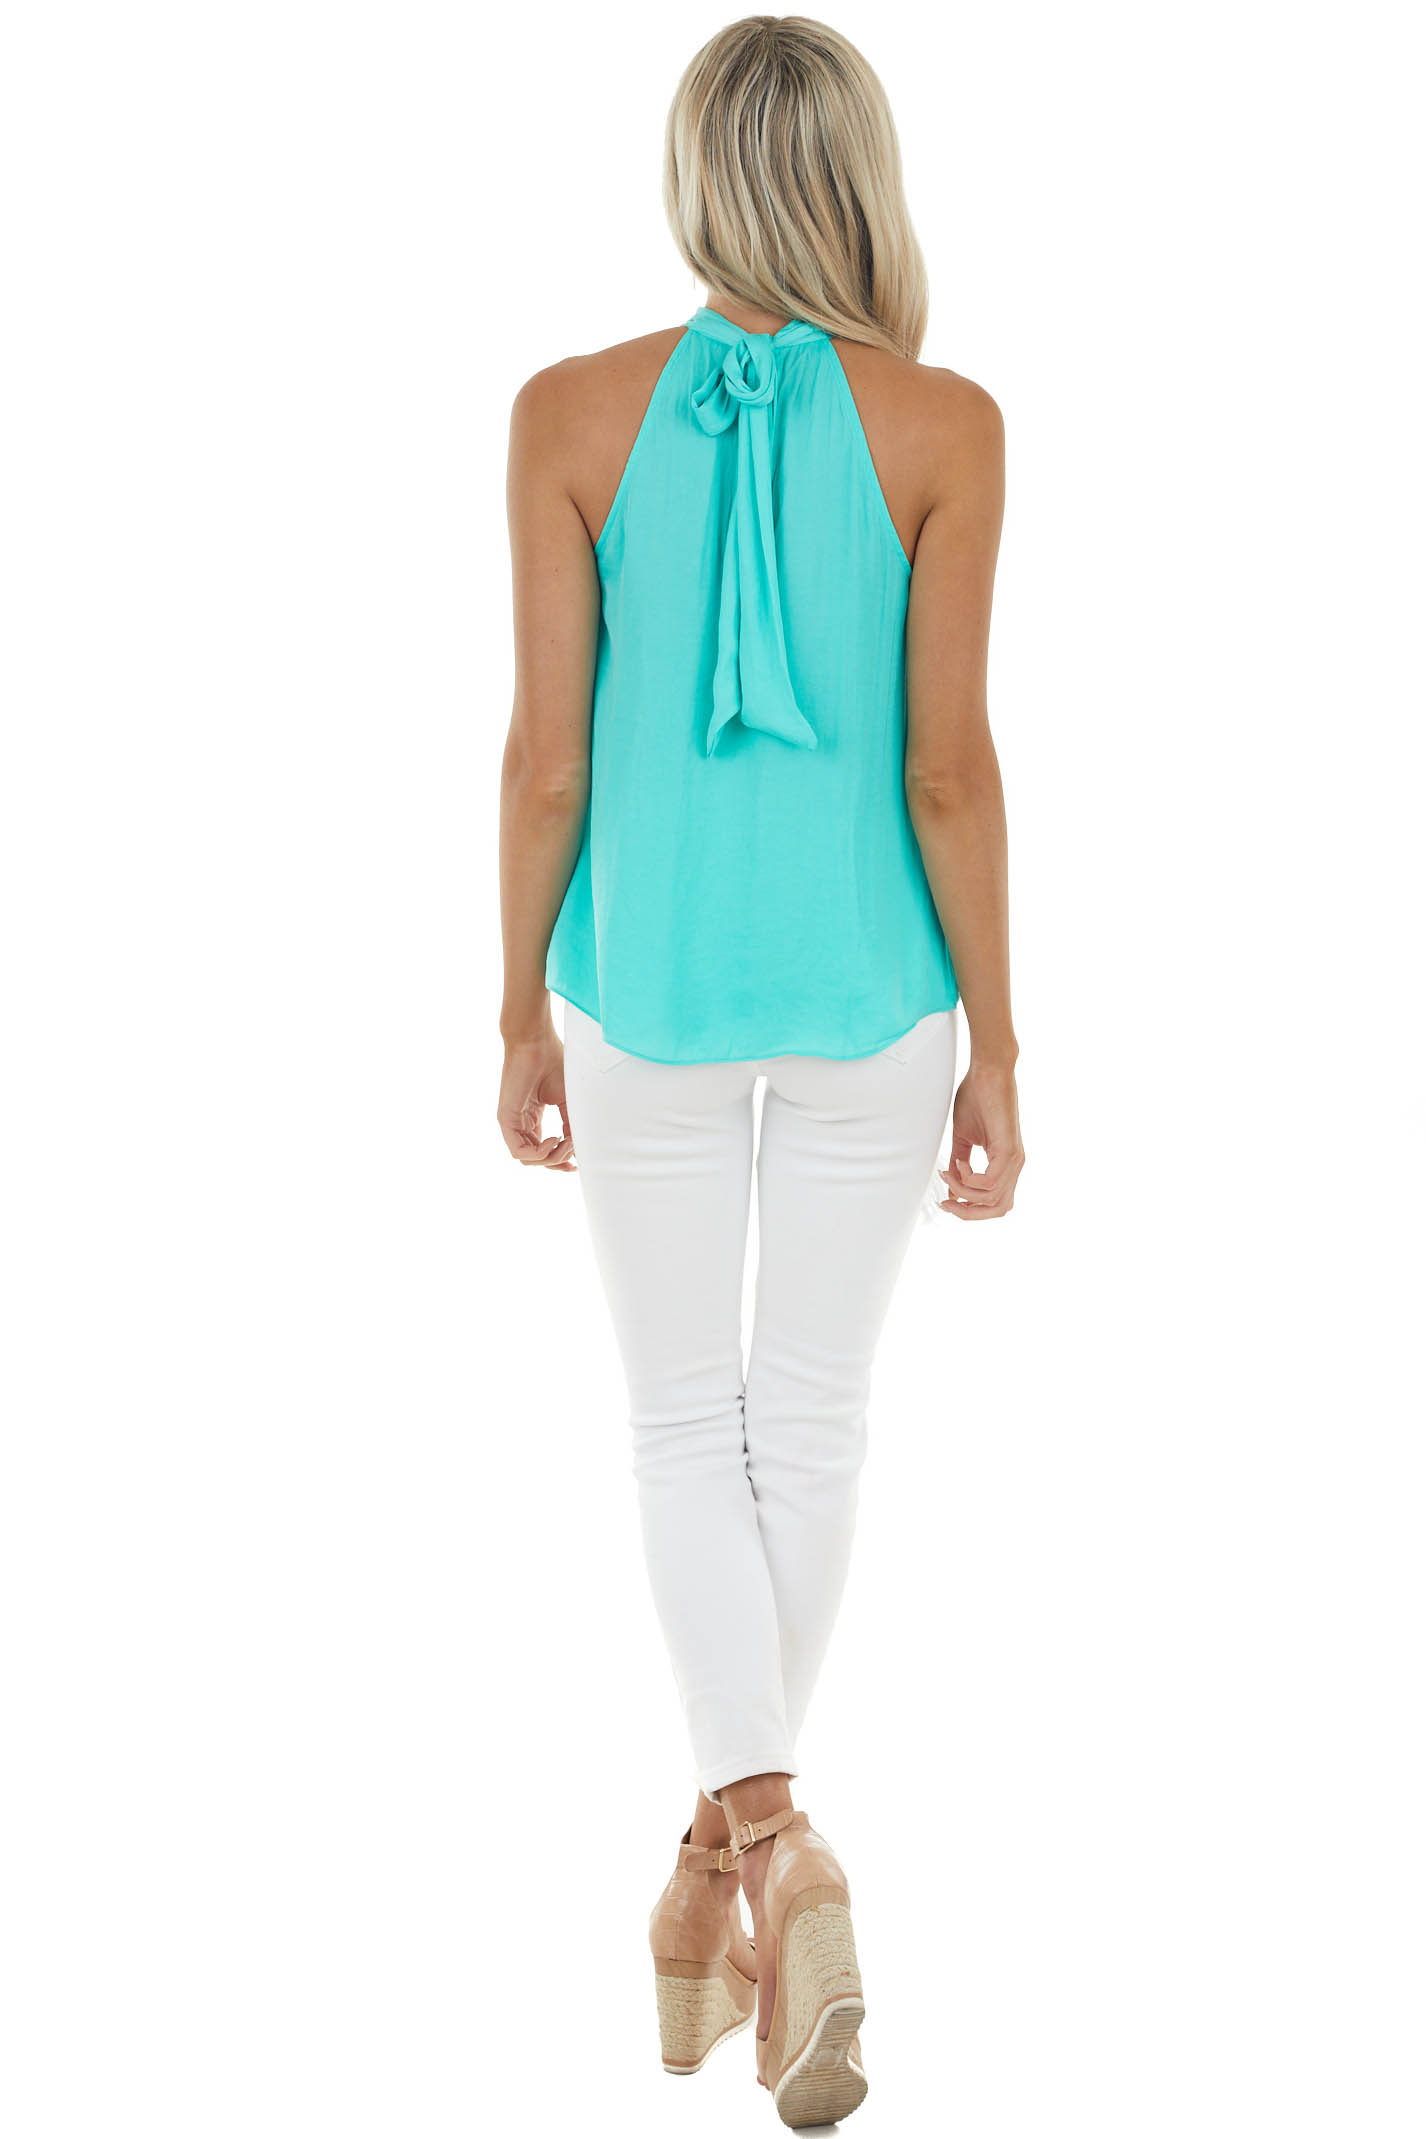 Turquoise Halter Neckline Silky Woven Top with Back Tie